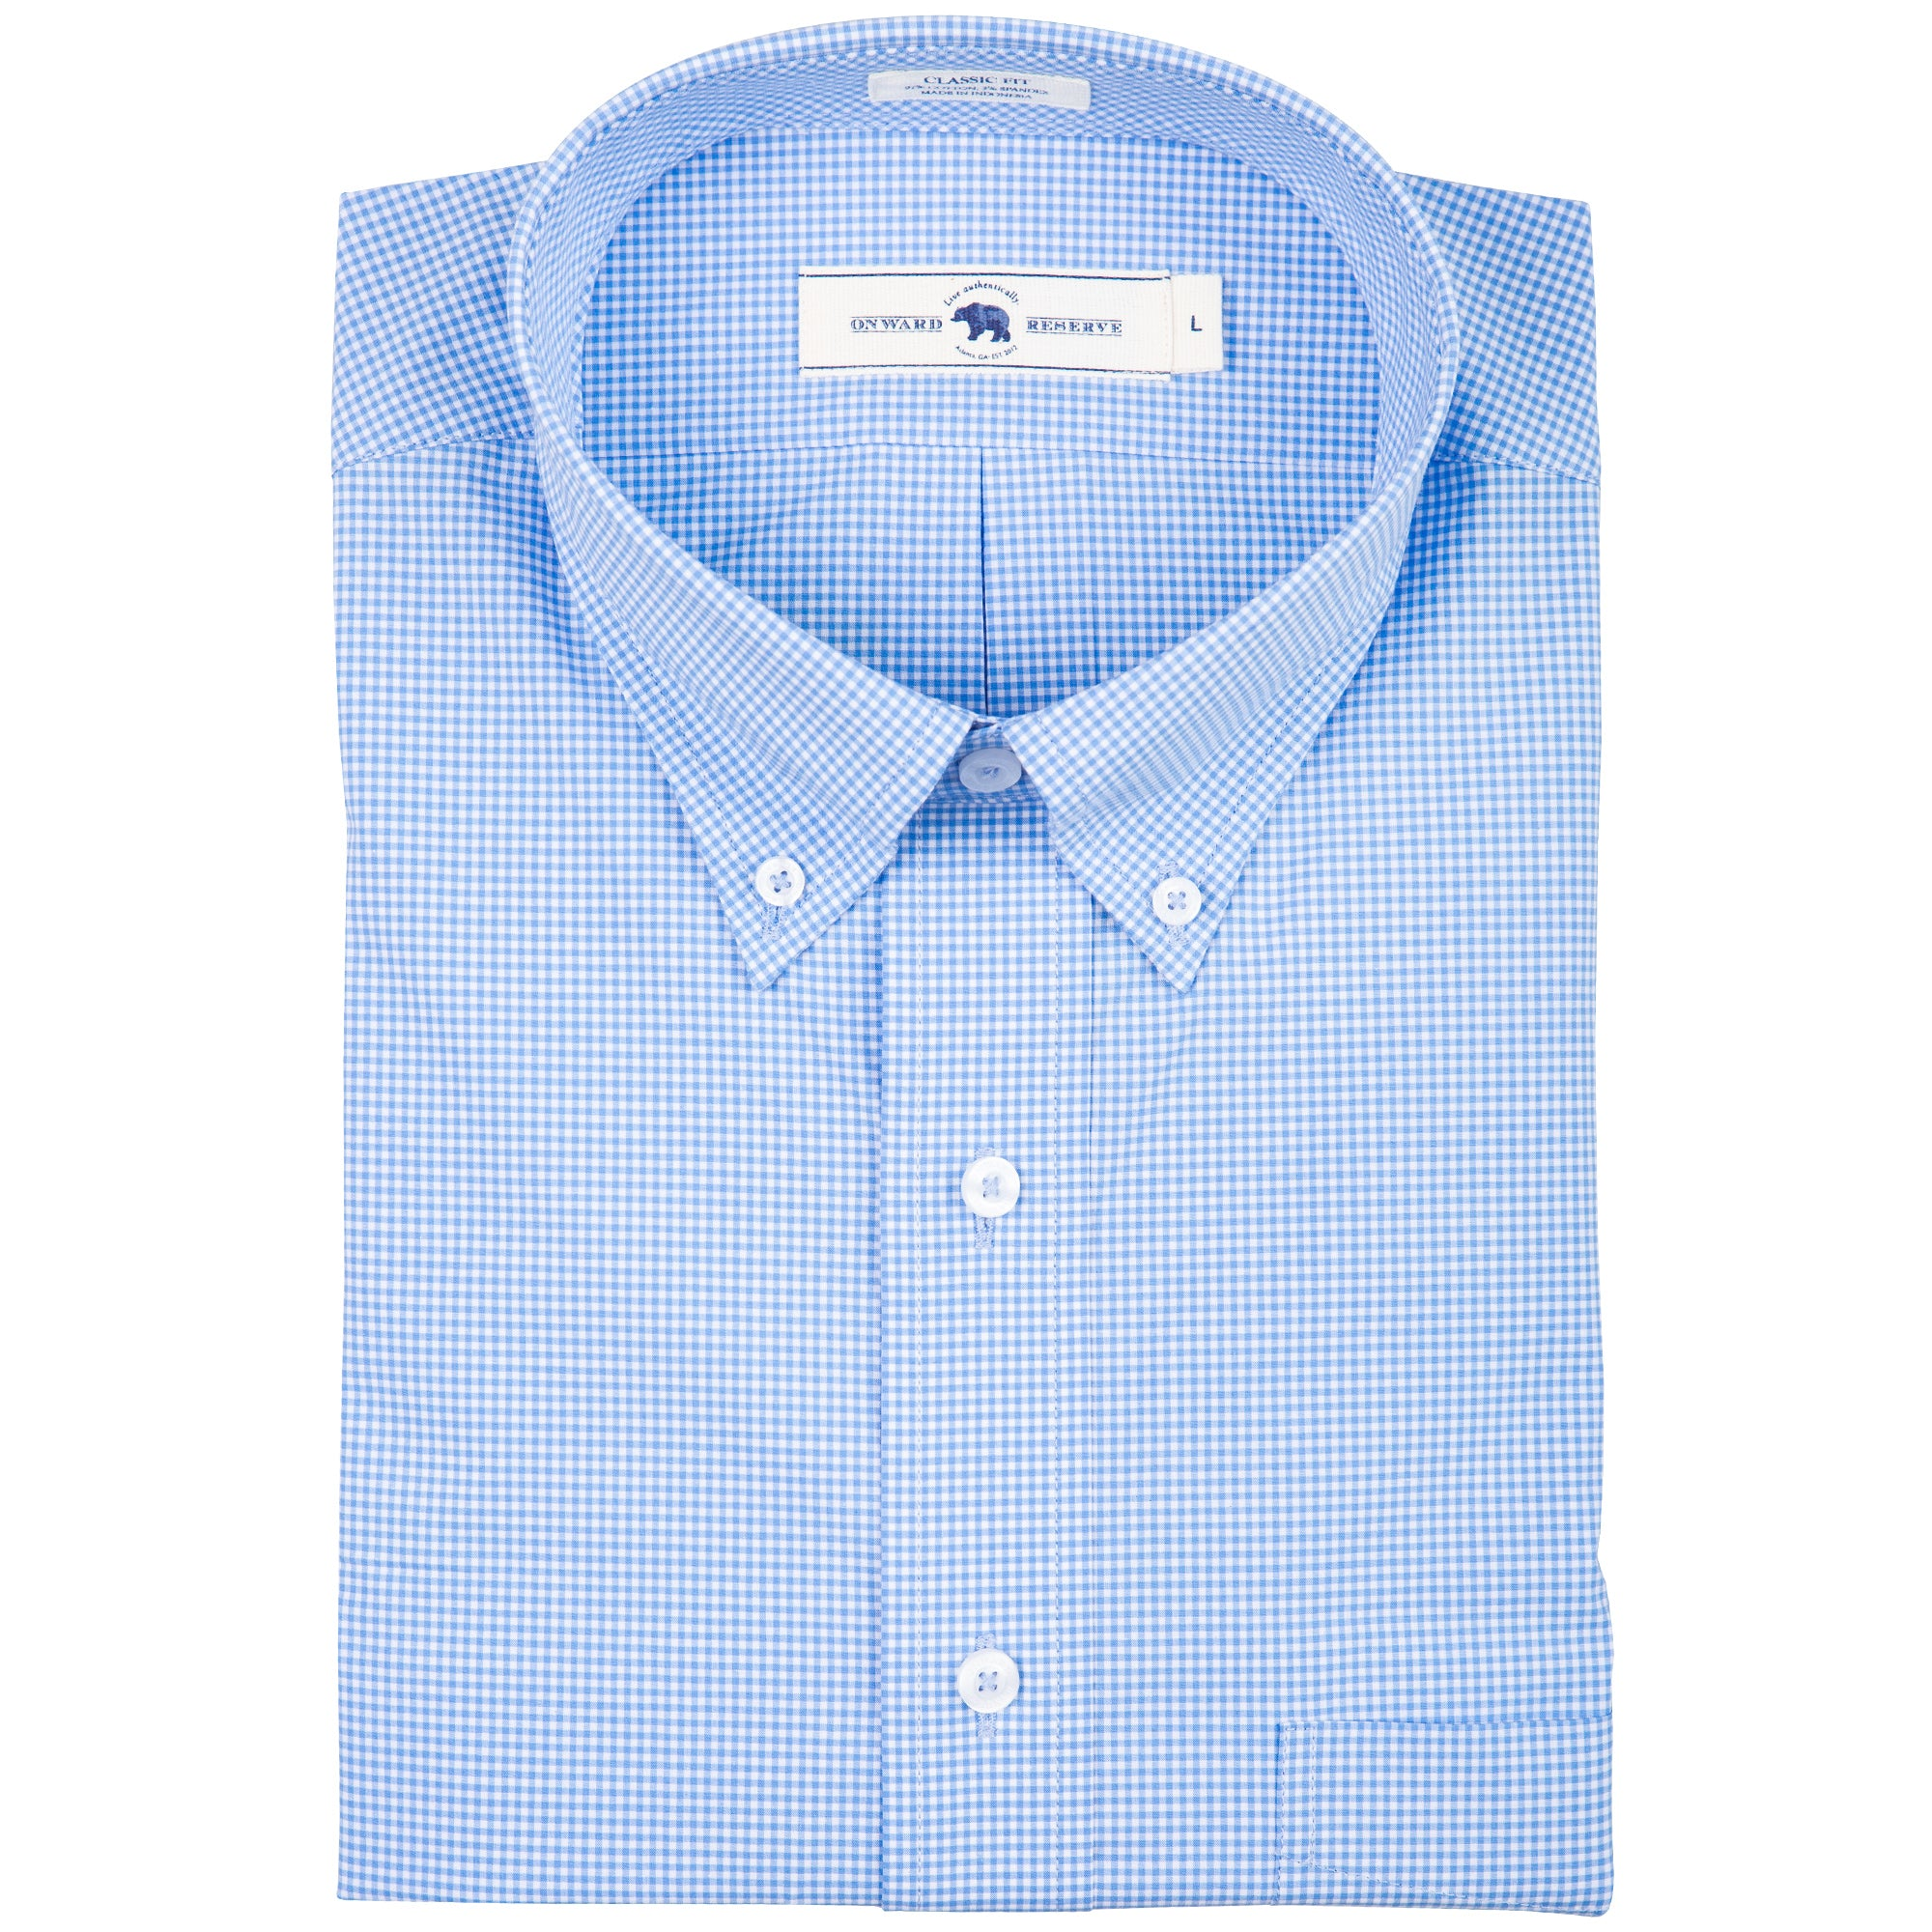 Sky Micro Gingham Classic Fit Stretch Cotton Button Down